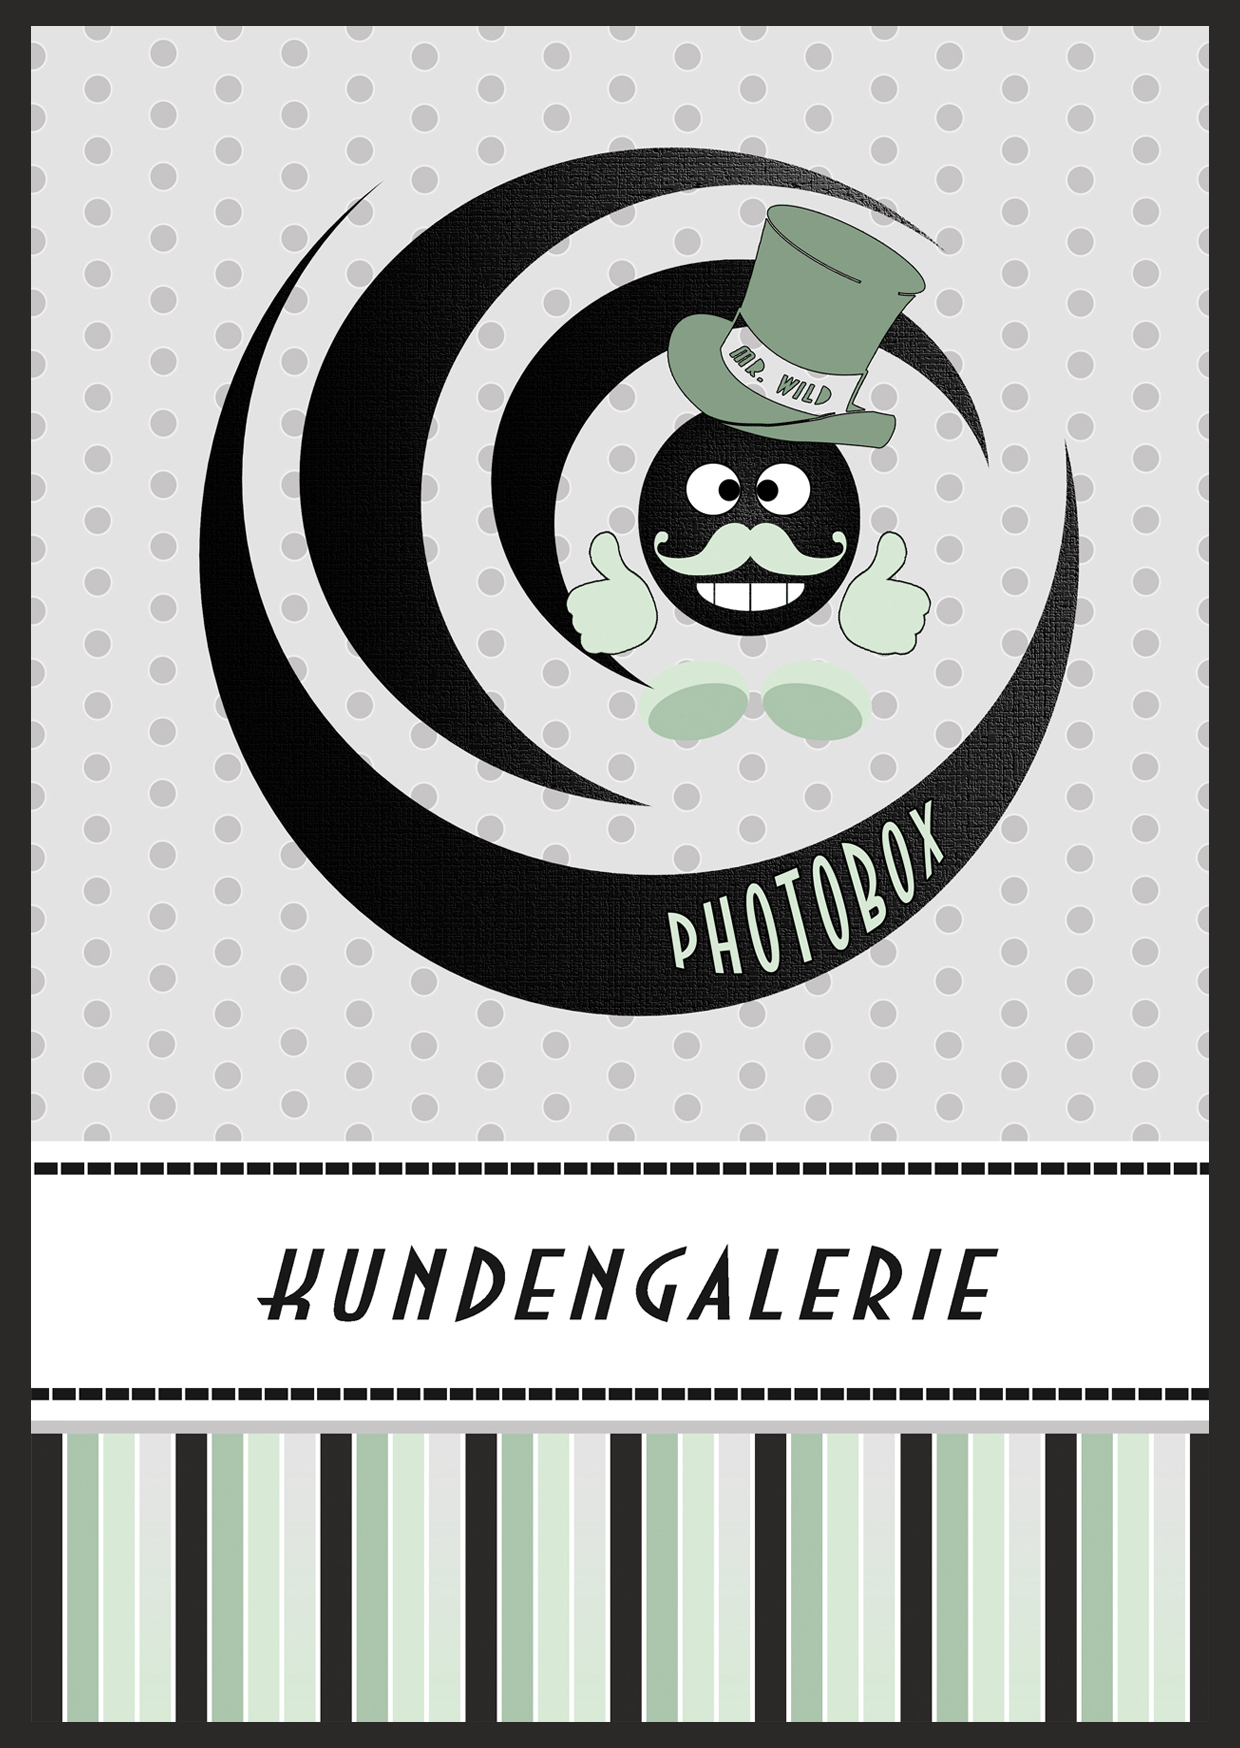 Photobox-Kundengalerie